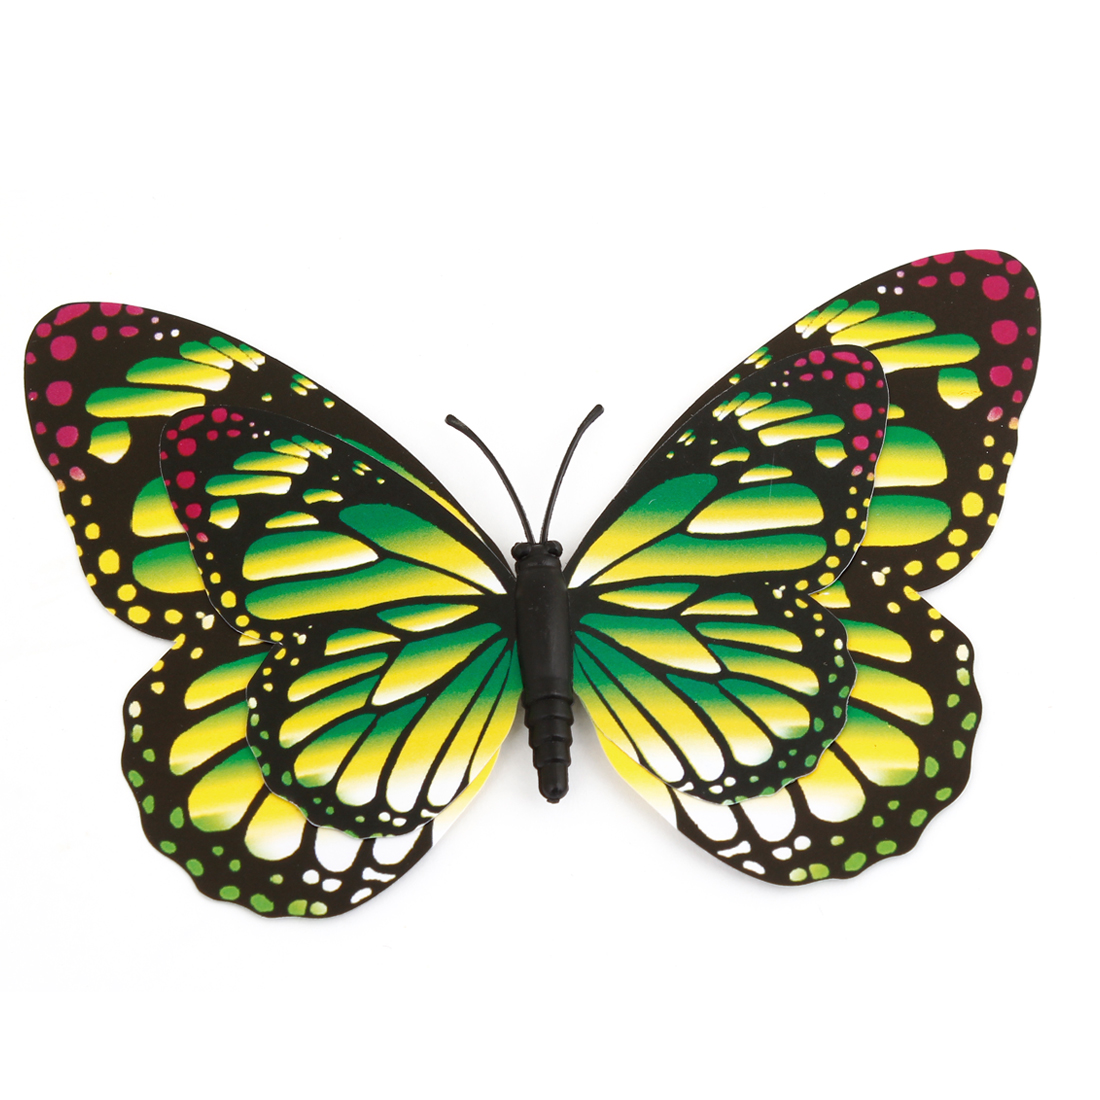 Fridge Refrigerator Surface Decor Butterfly Shaped Magnet Sticker Green Black